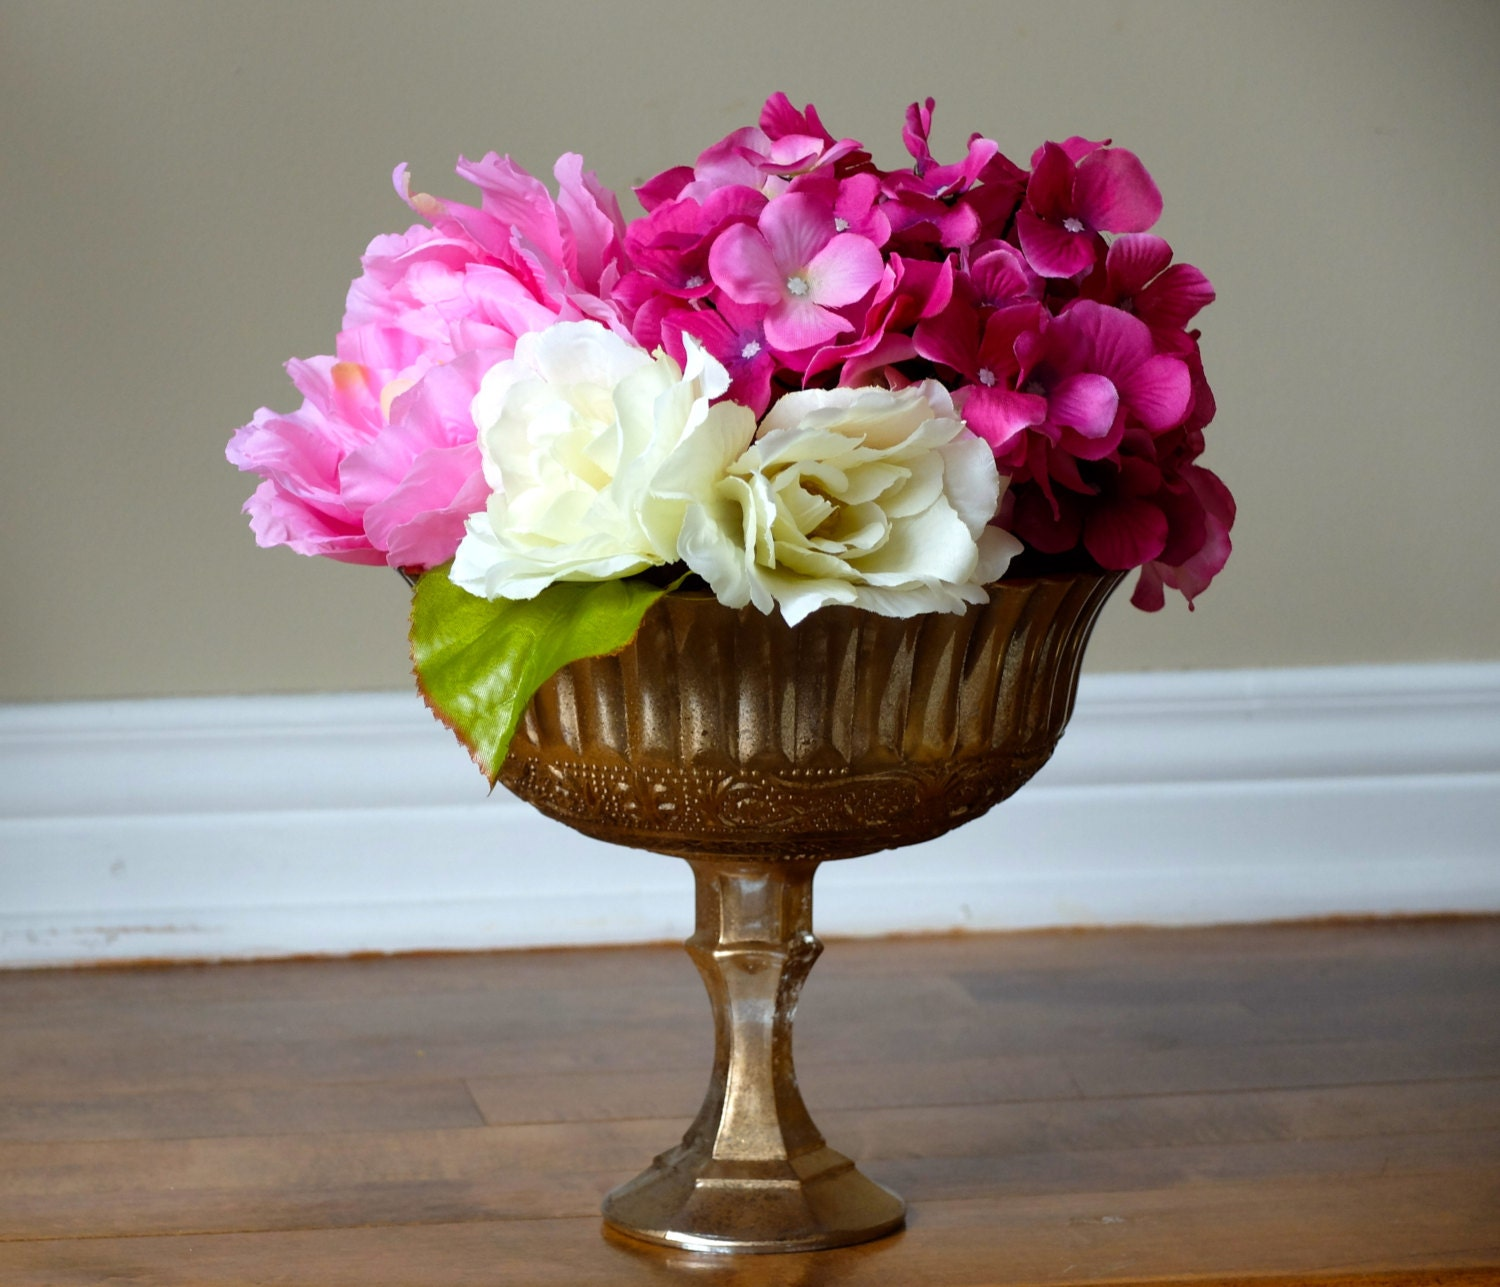 Wedding centerpiece centrepiece pedestal vase by